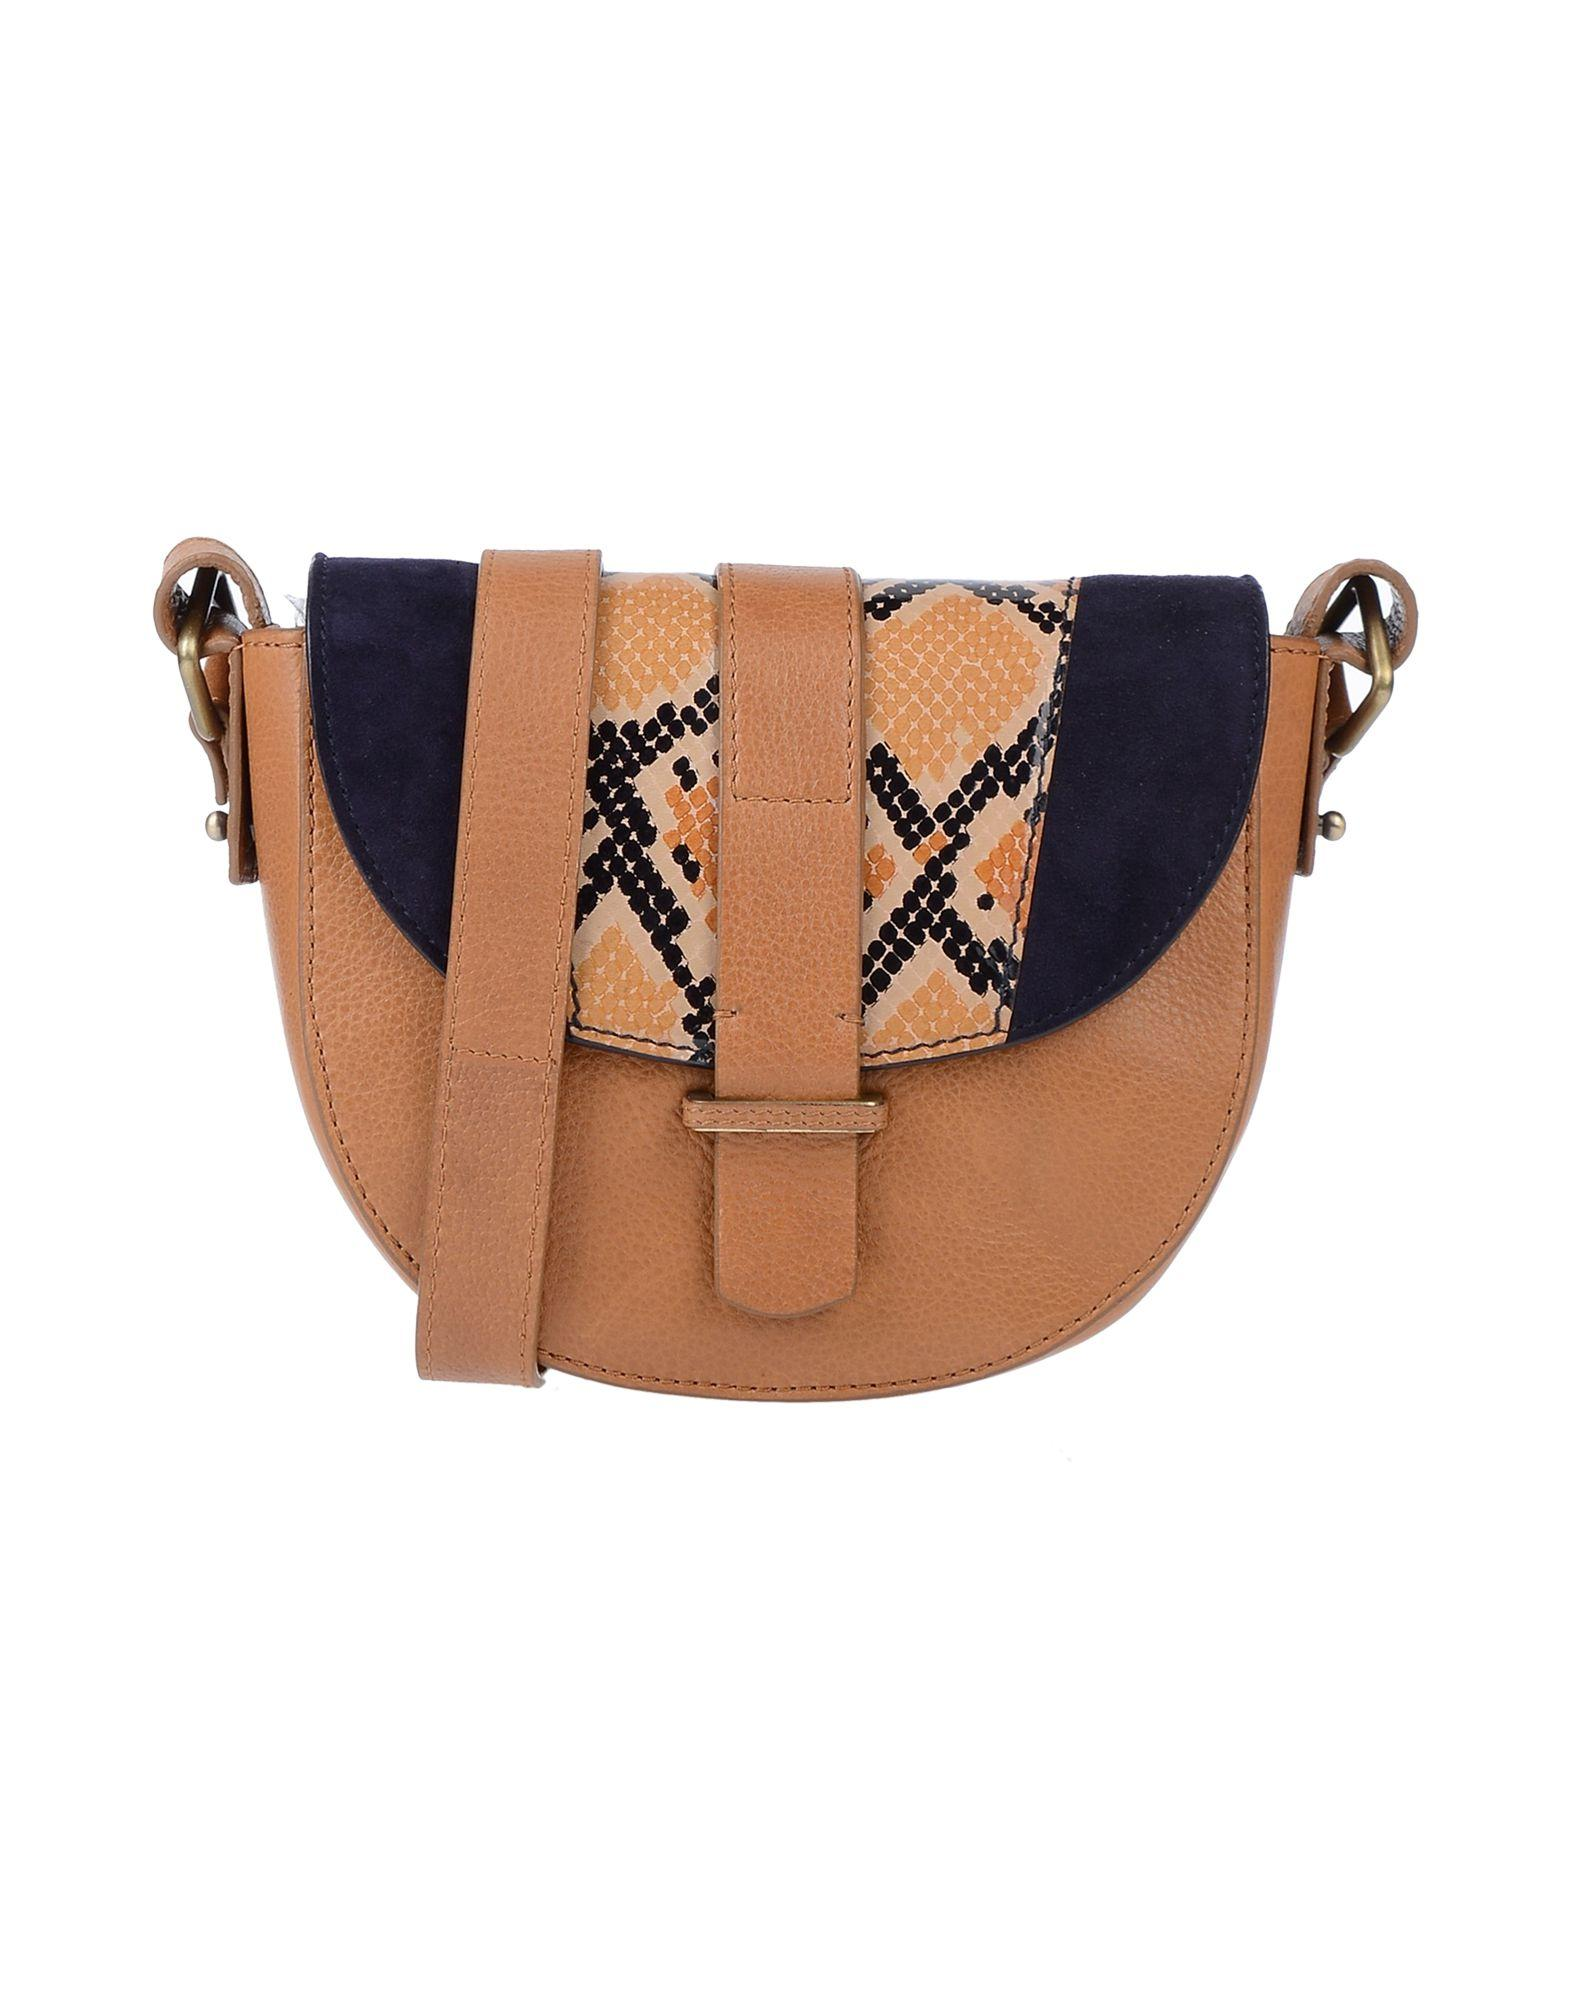 687033be2c Lyst - Sessun Cross-body Bag in Brown